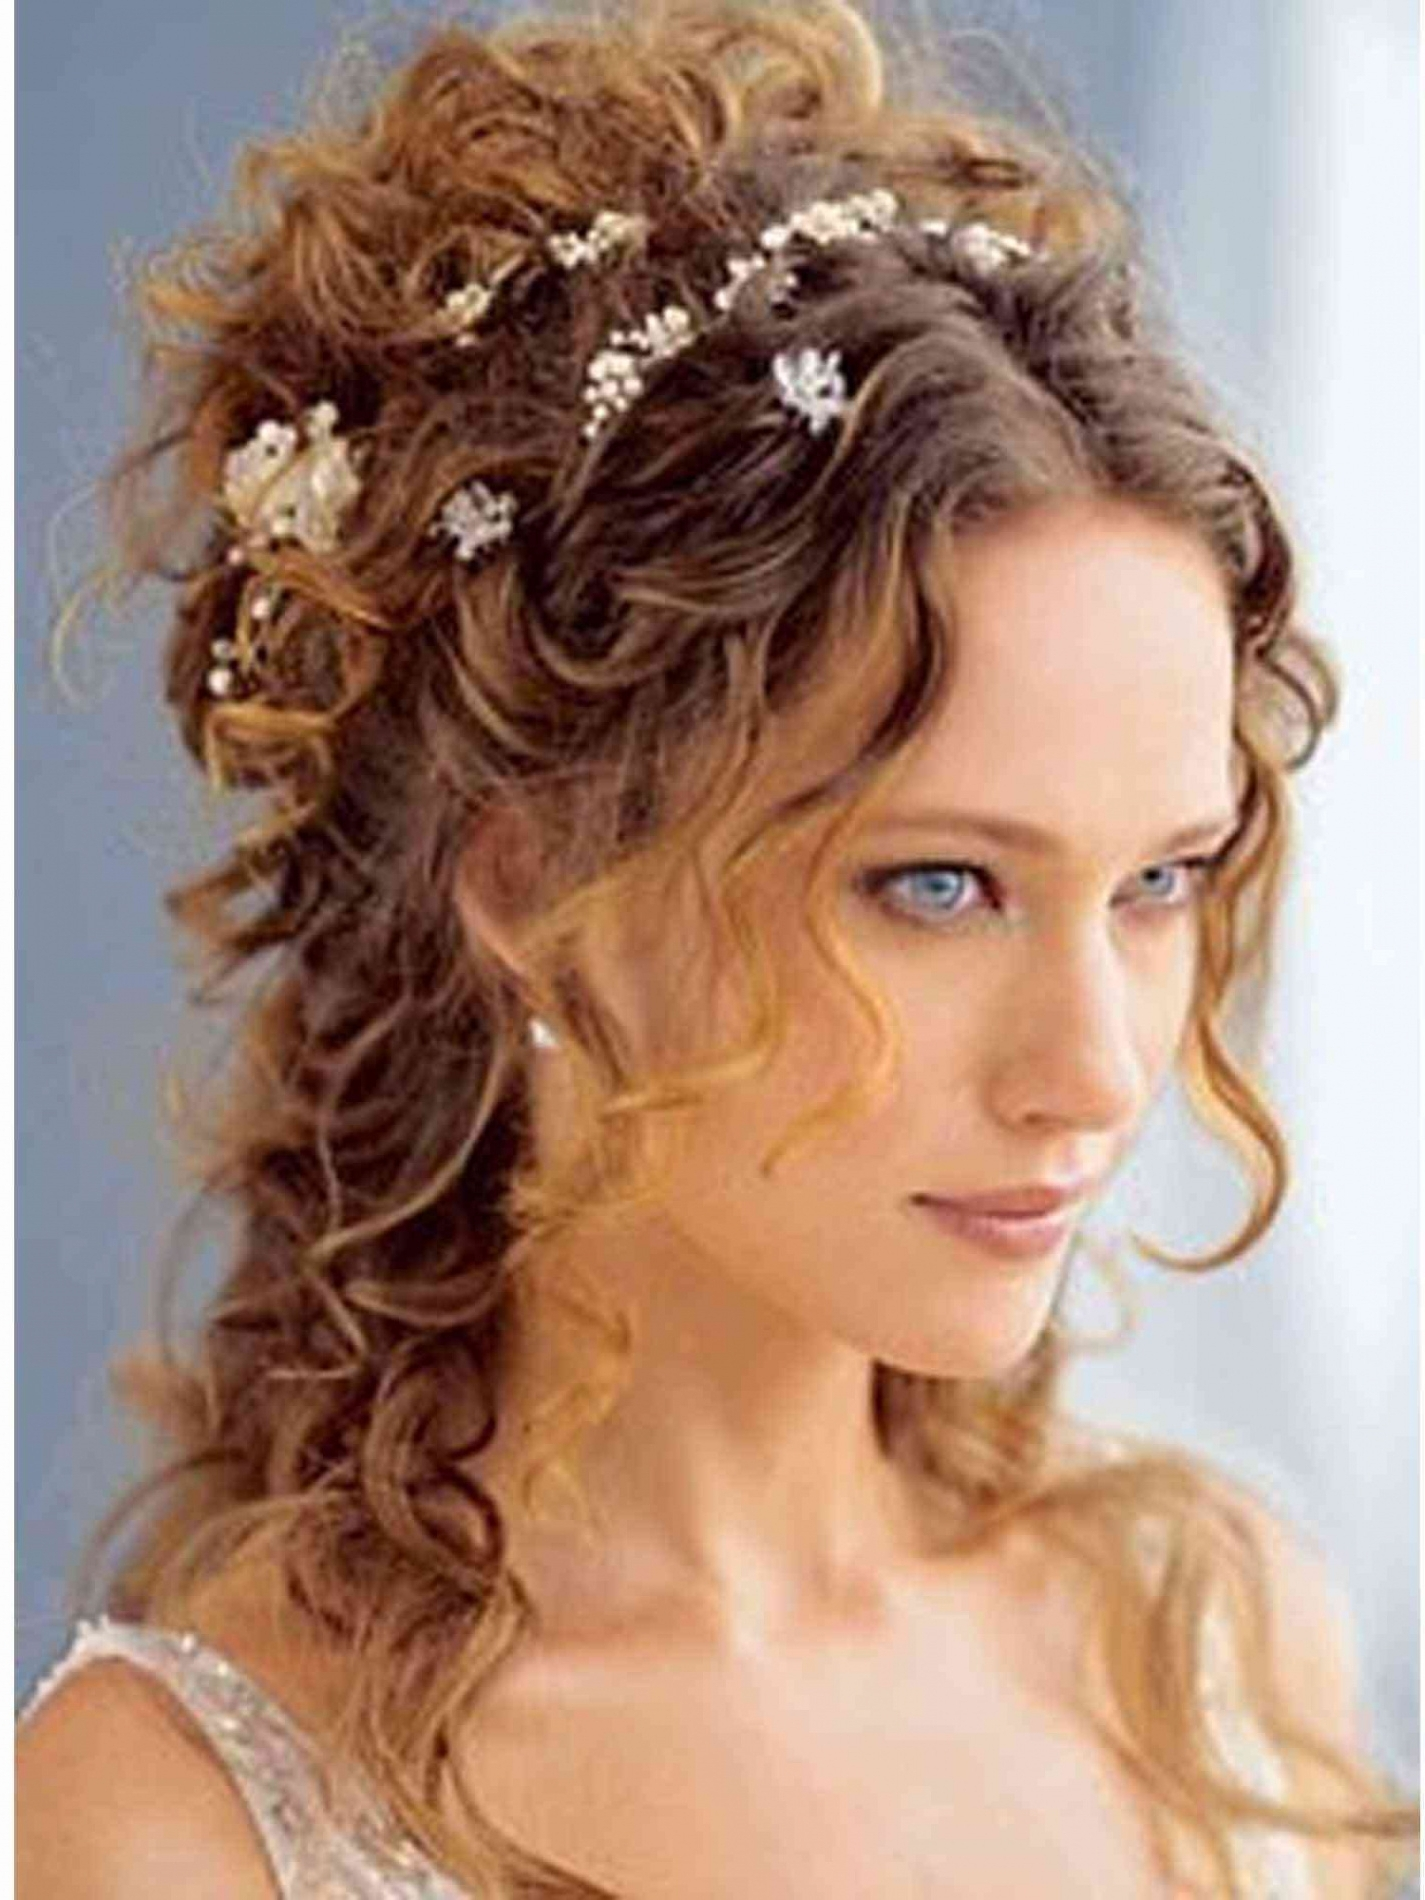 Hairstyles: Put Up Hairstyles For Weddings | Sexy Hair Updos Intended For Sexy Updo Hairstyles (View 8 of 15)